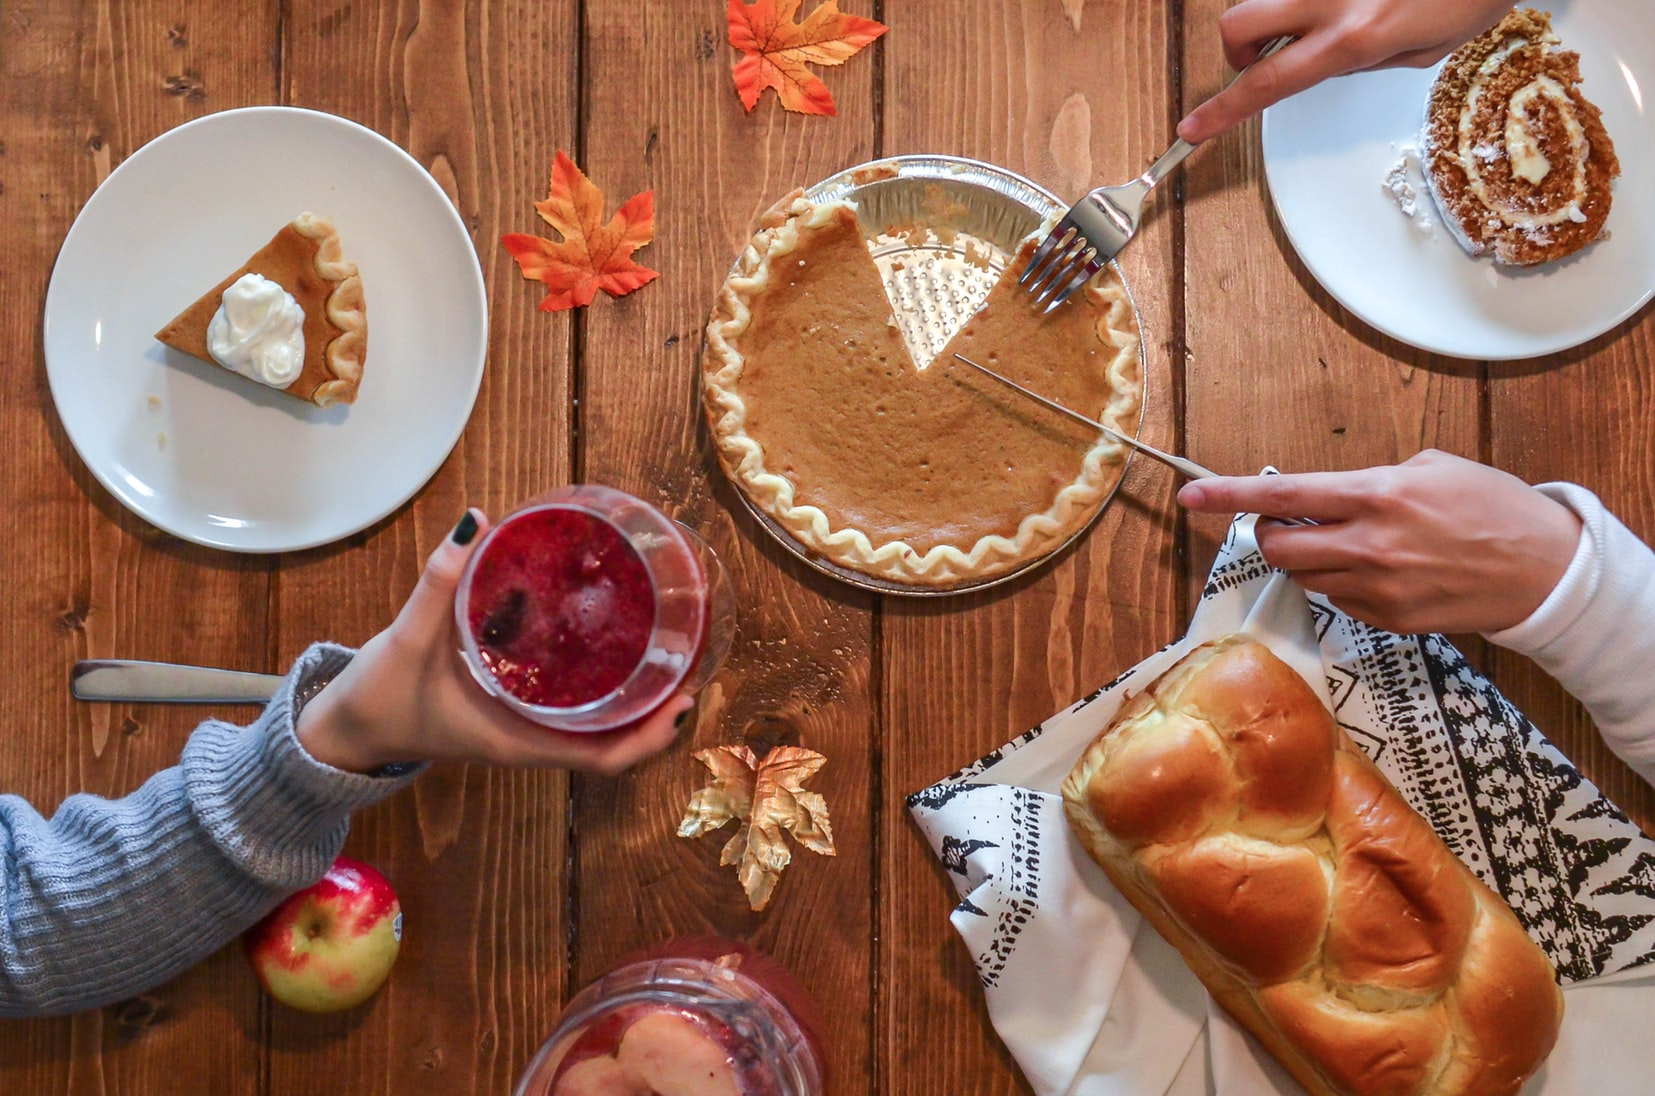 Two people enjoying pie and bread during Thanksgiving